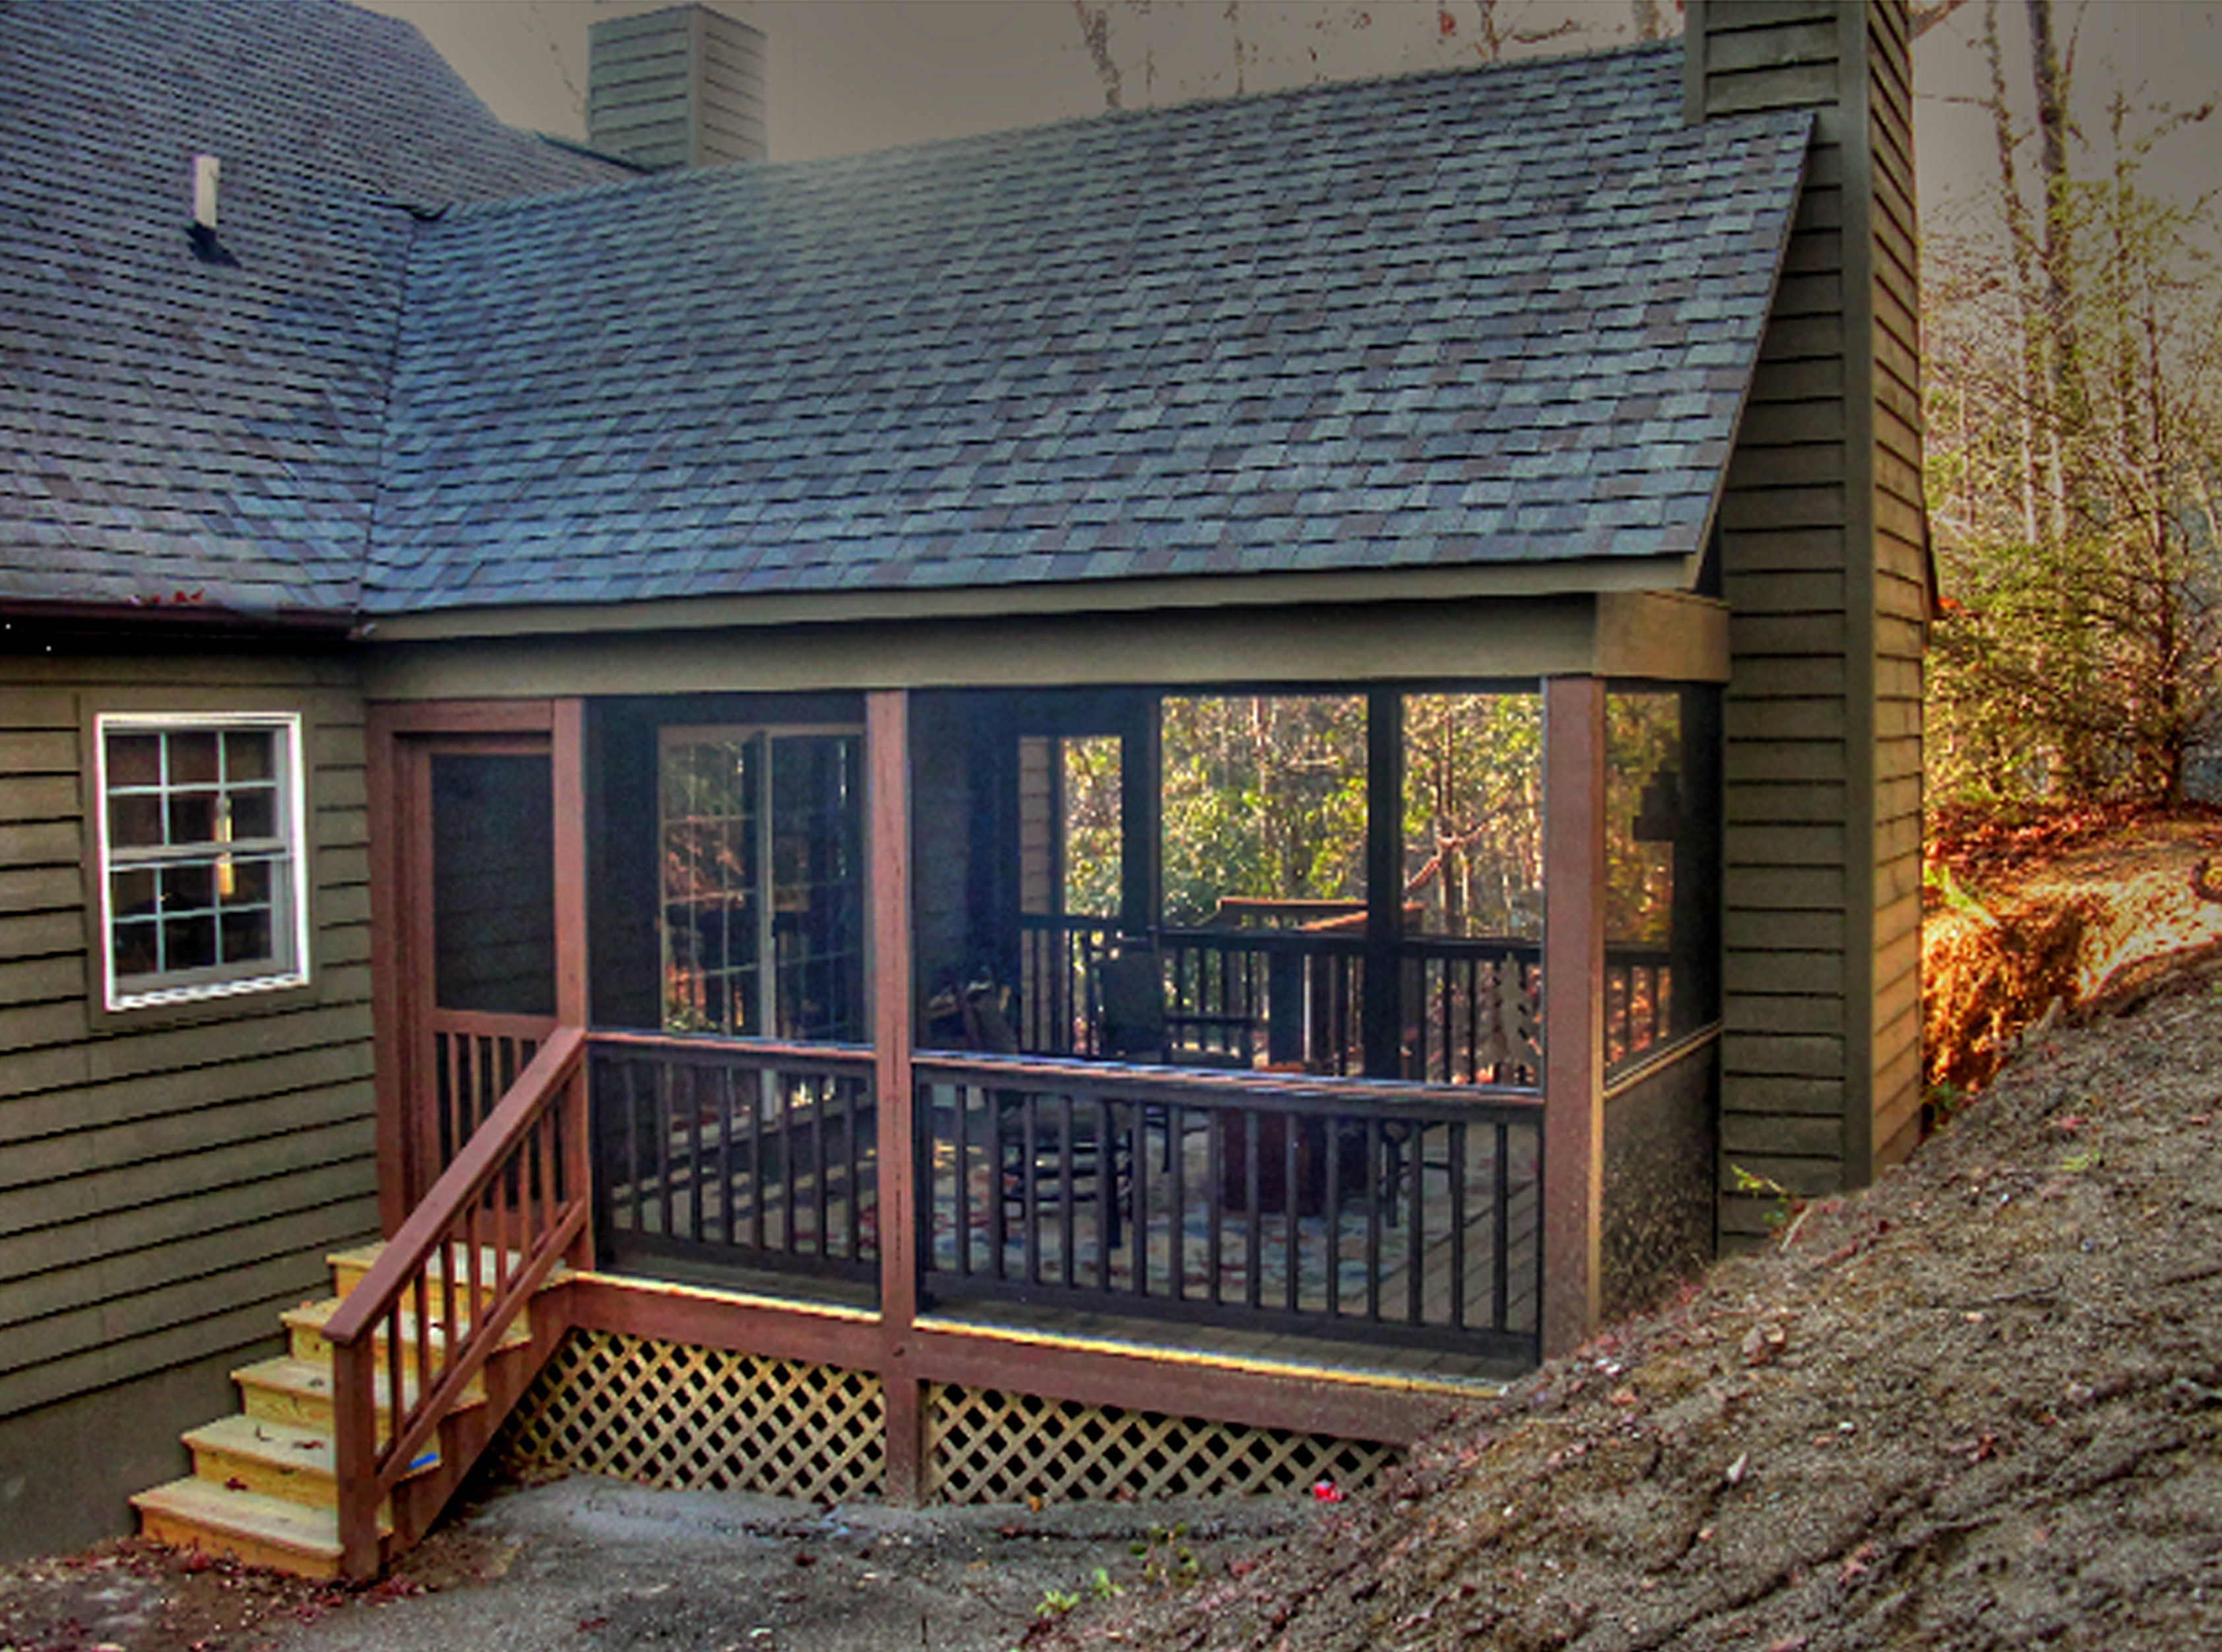 Banks job screen porch addition with fireplace by Moore